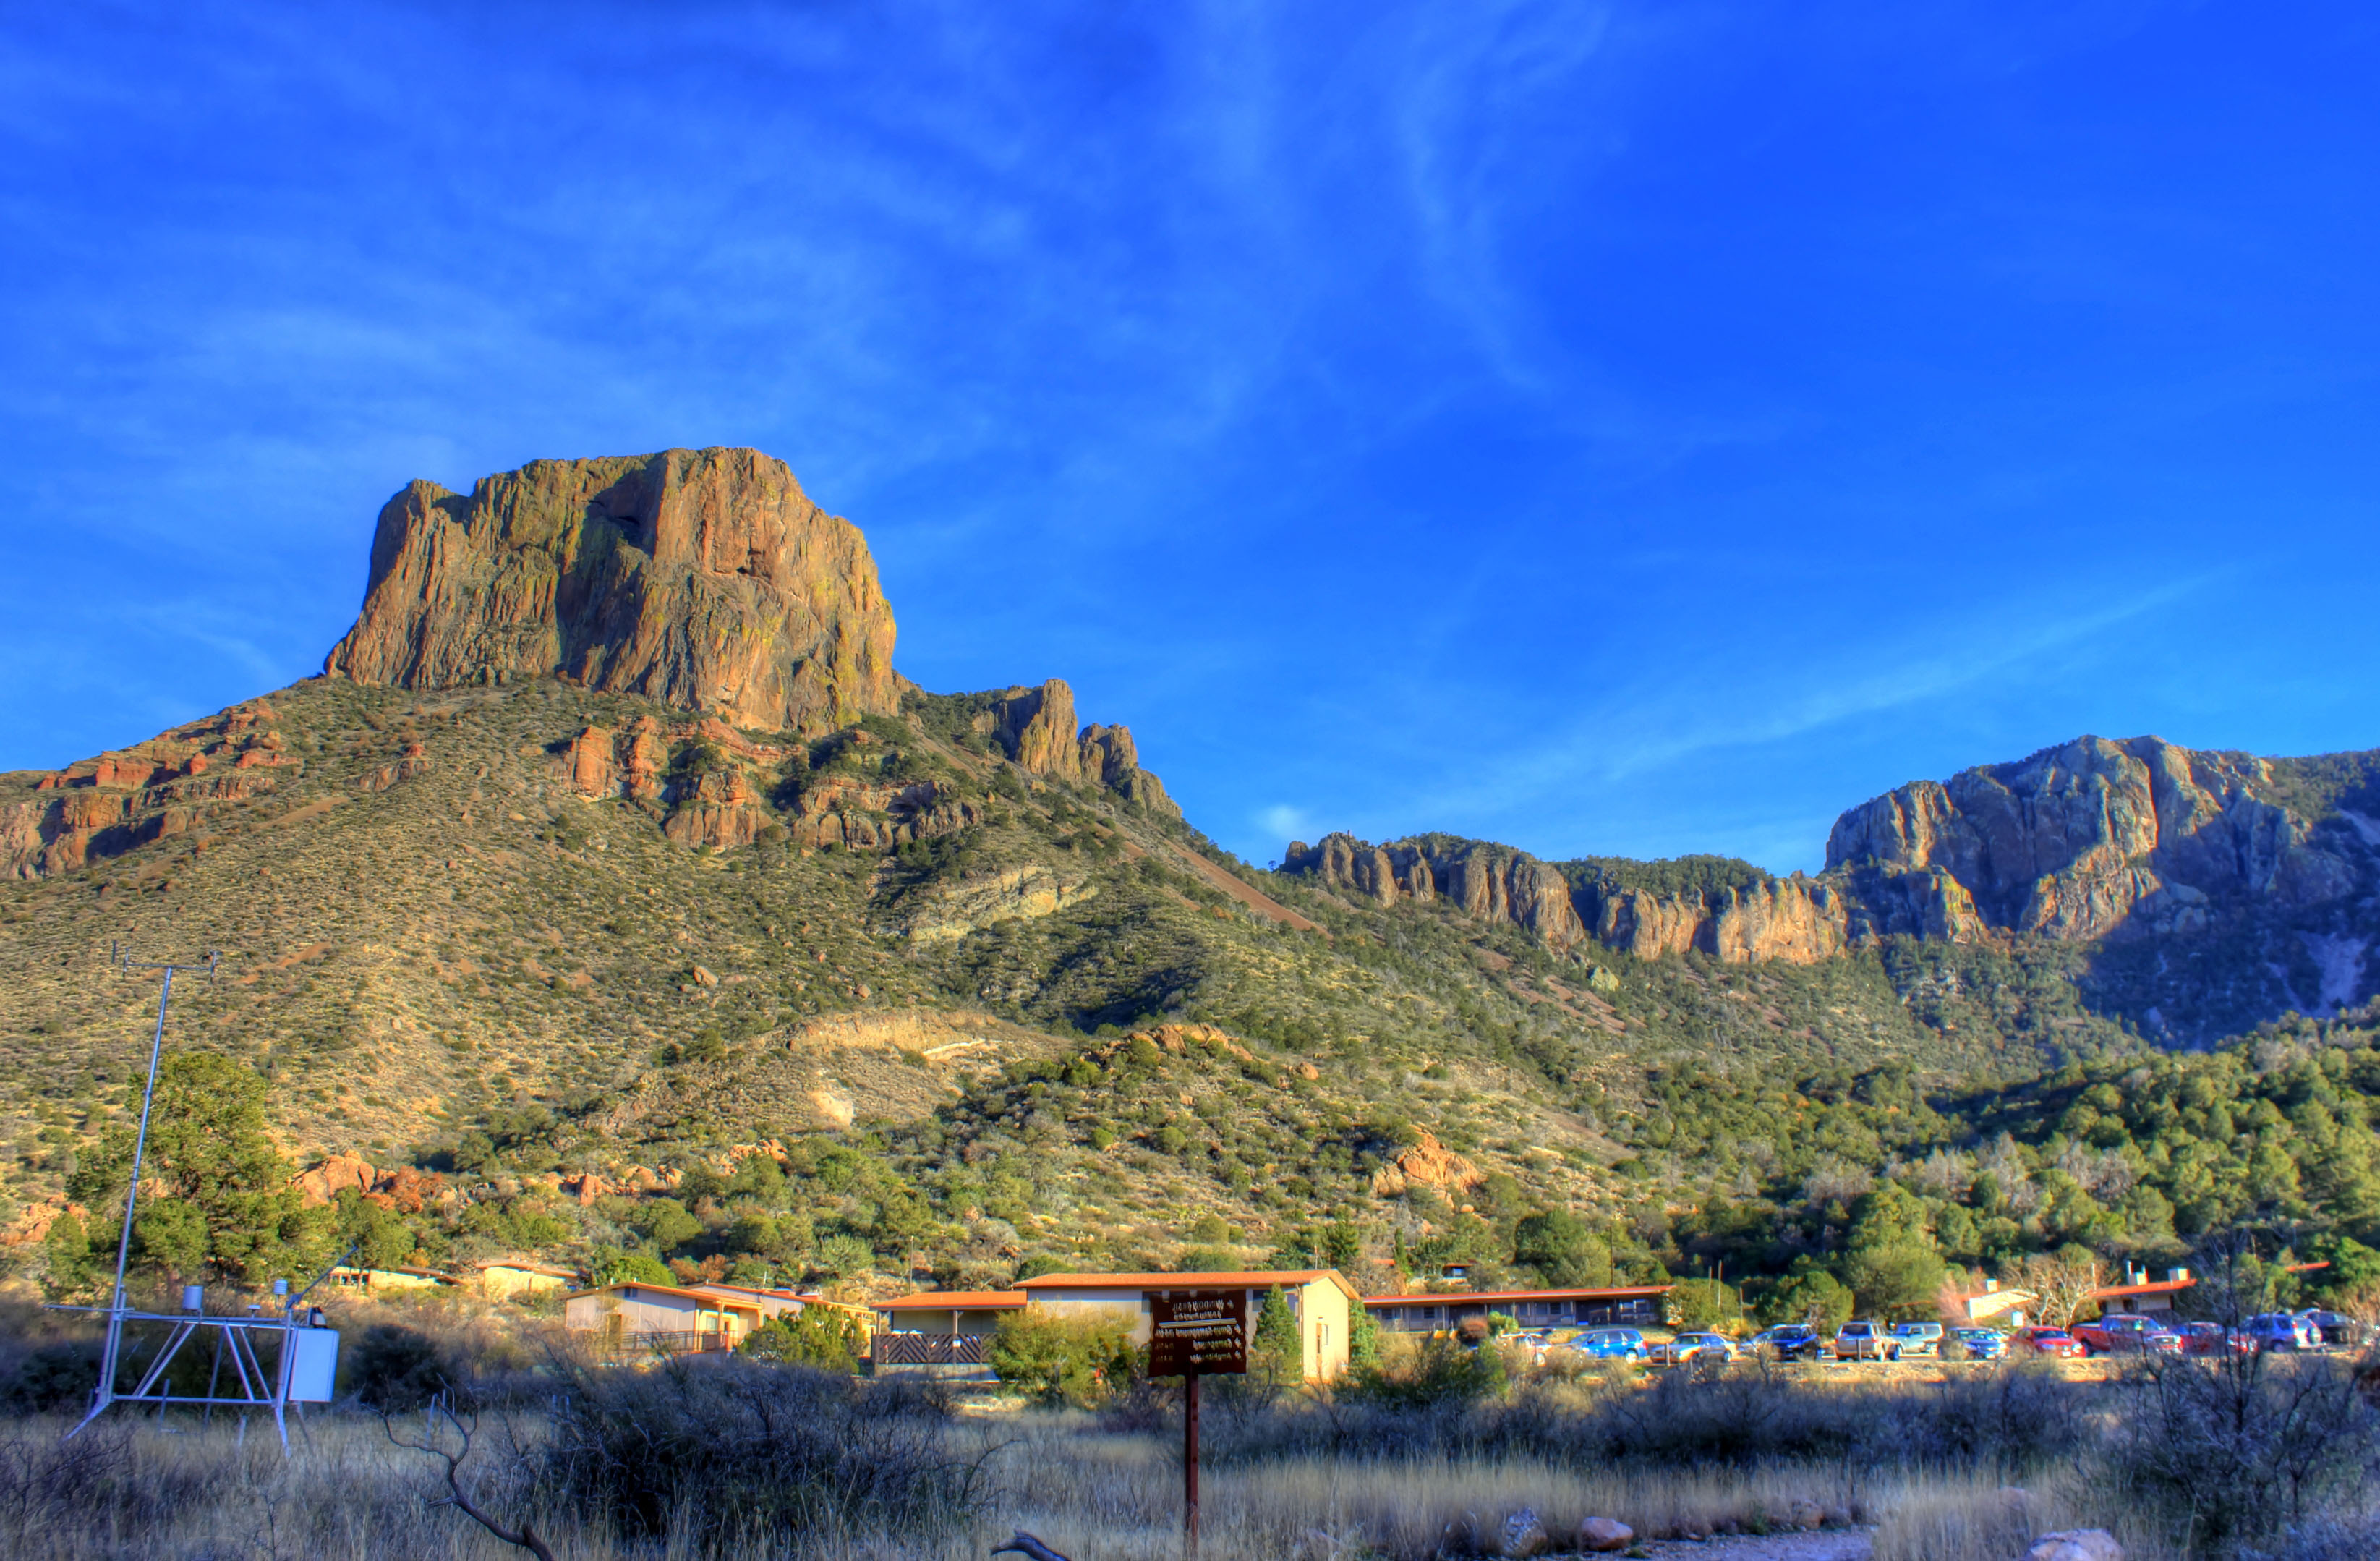 FileGfptexasbigbendnationalparkmountainsbythelodgejpg - Texas national parks